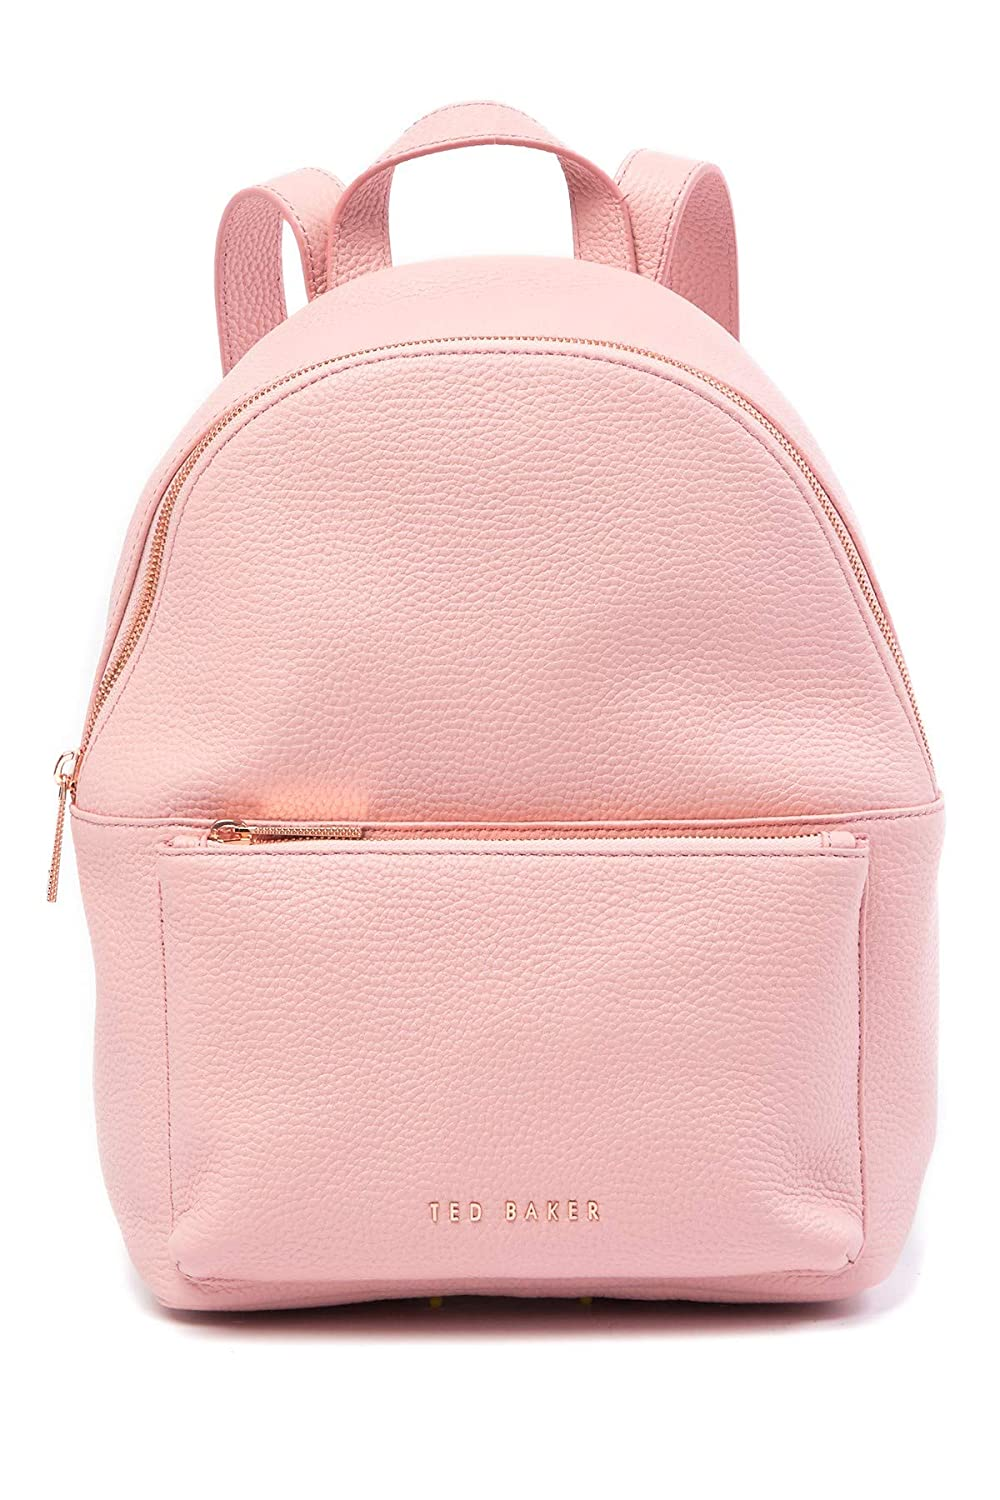 652182cc1 Ted Baker London Pearen Soft Grain Leather Backpack (Light Pink):  Amazon.co.uk: Shoes & Bags